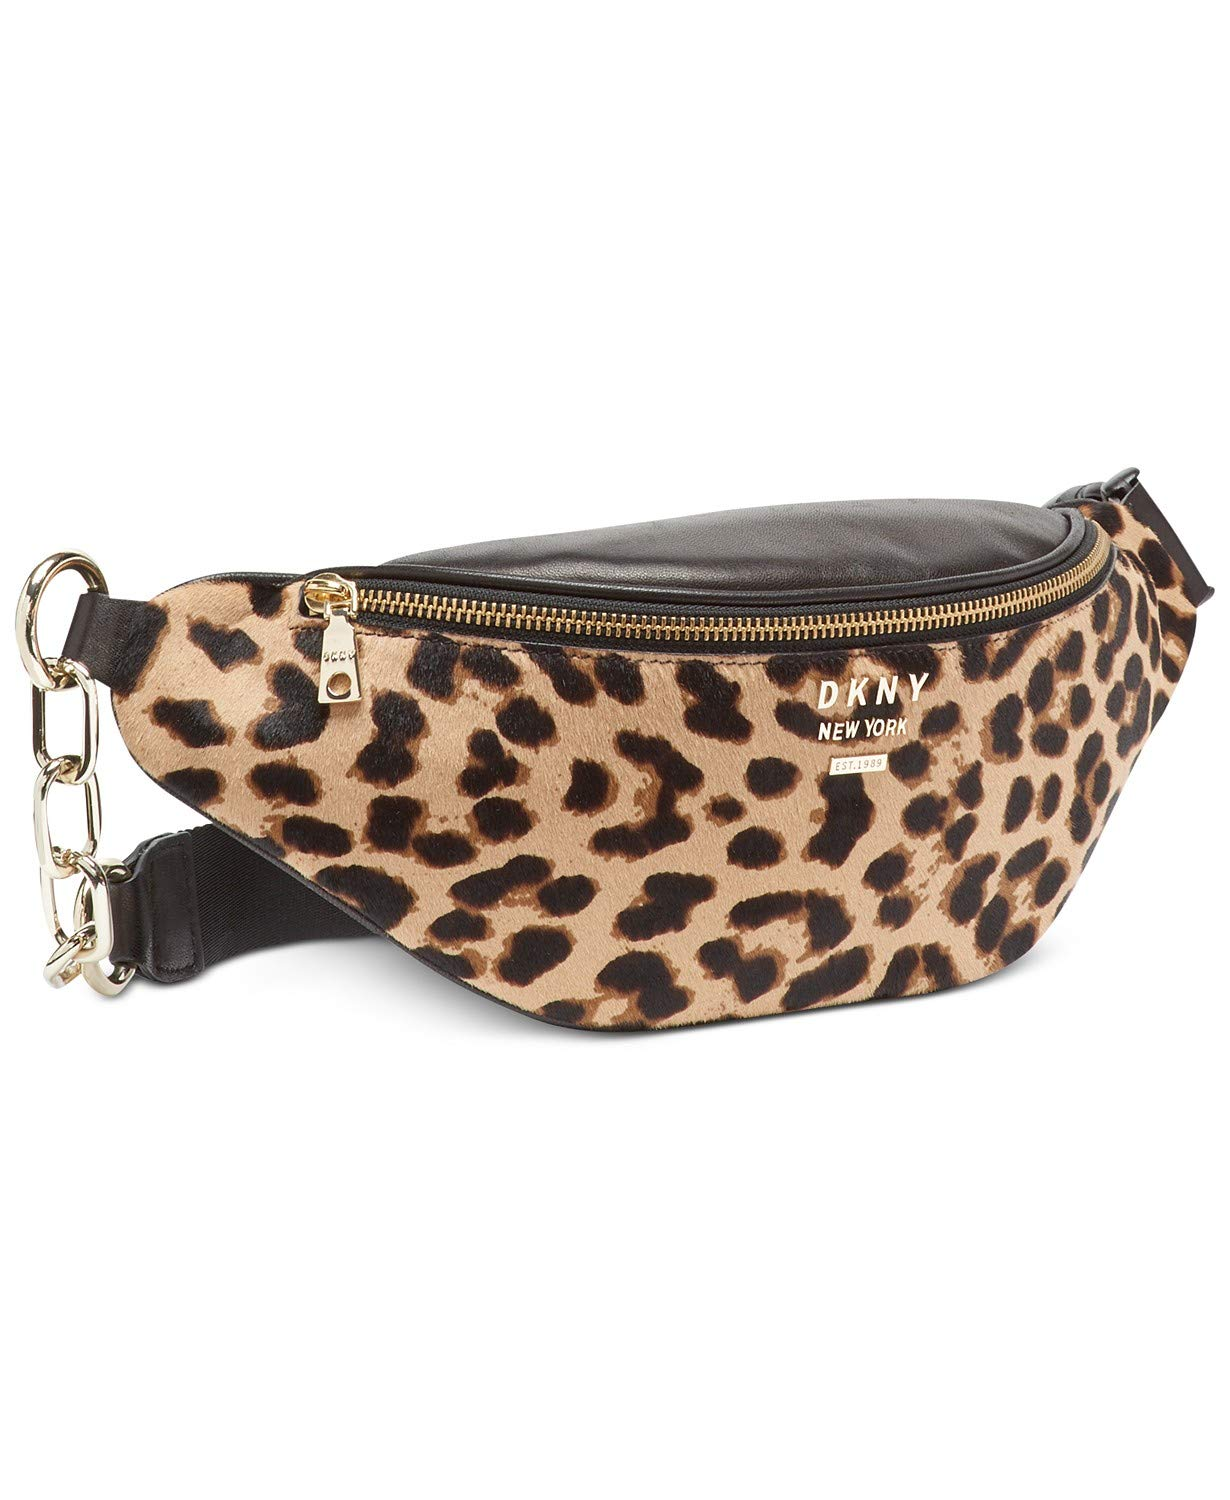 DKNY Women's Kim Leather Leopard Belt Bag Fanny Pack Black